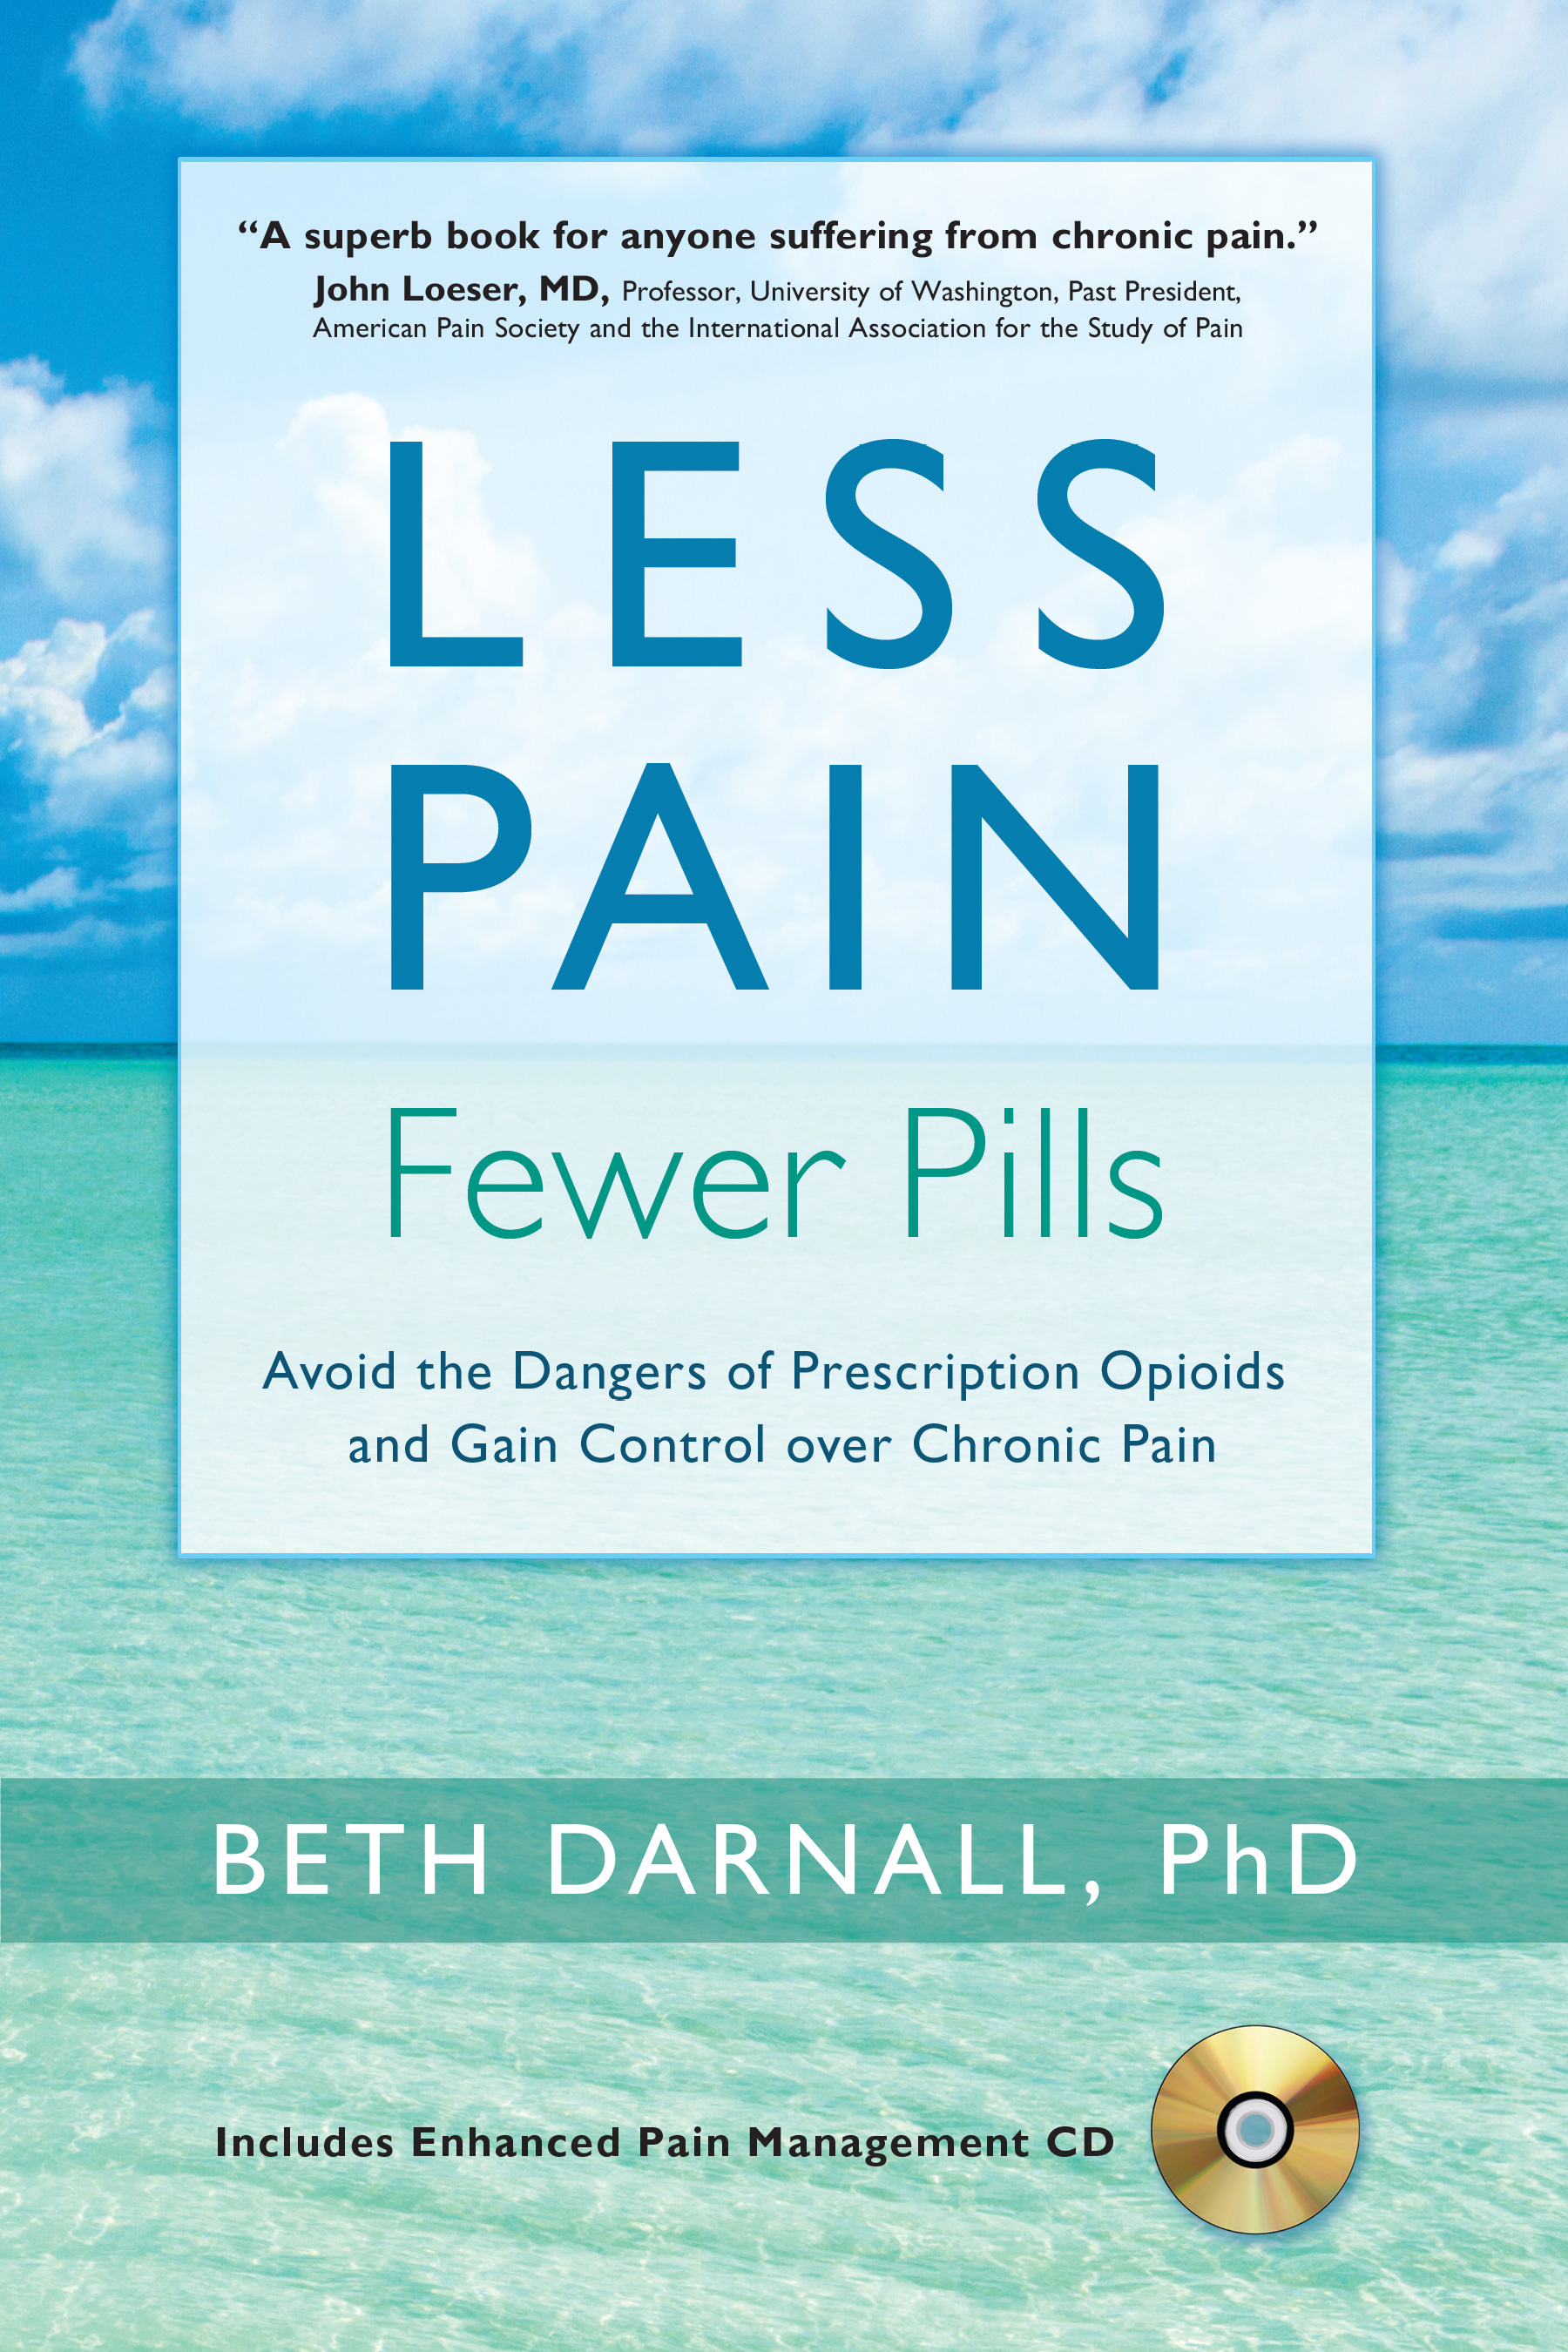 Less pain fewer pills cover front 6x9 copy